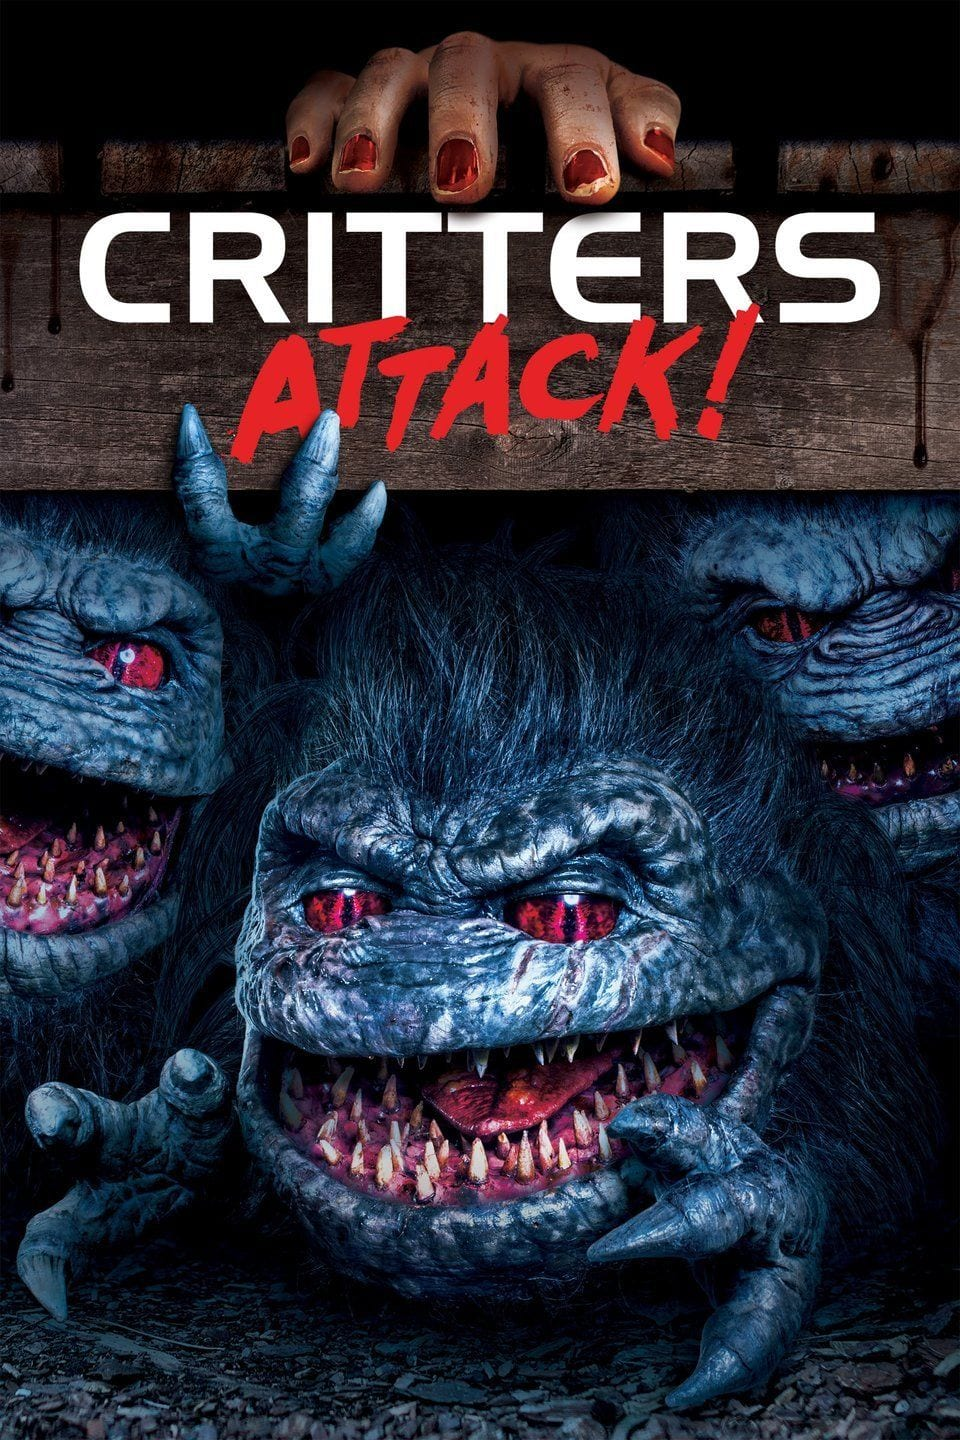 Critters Attack! Poster 2019